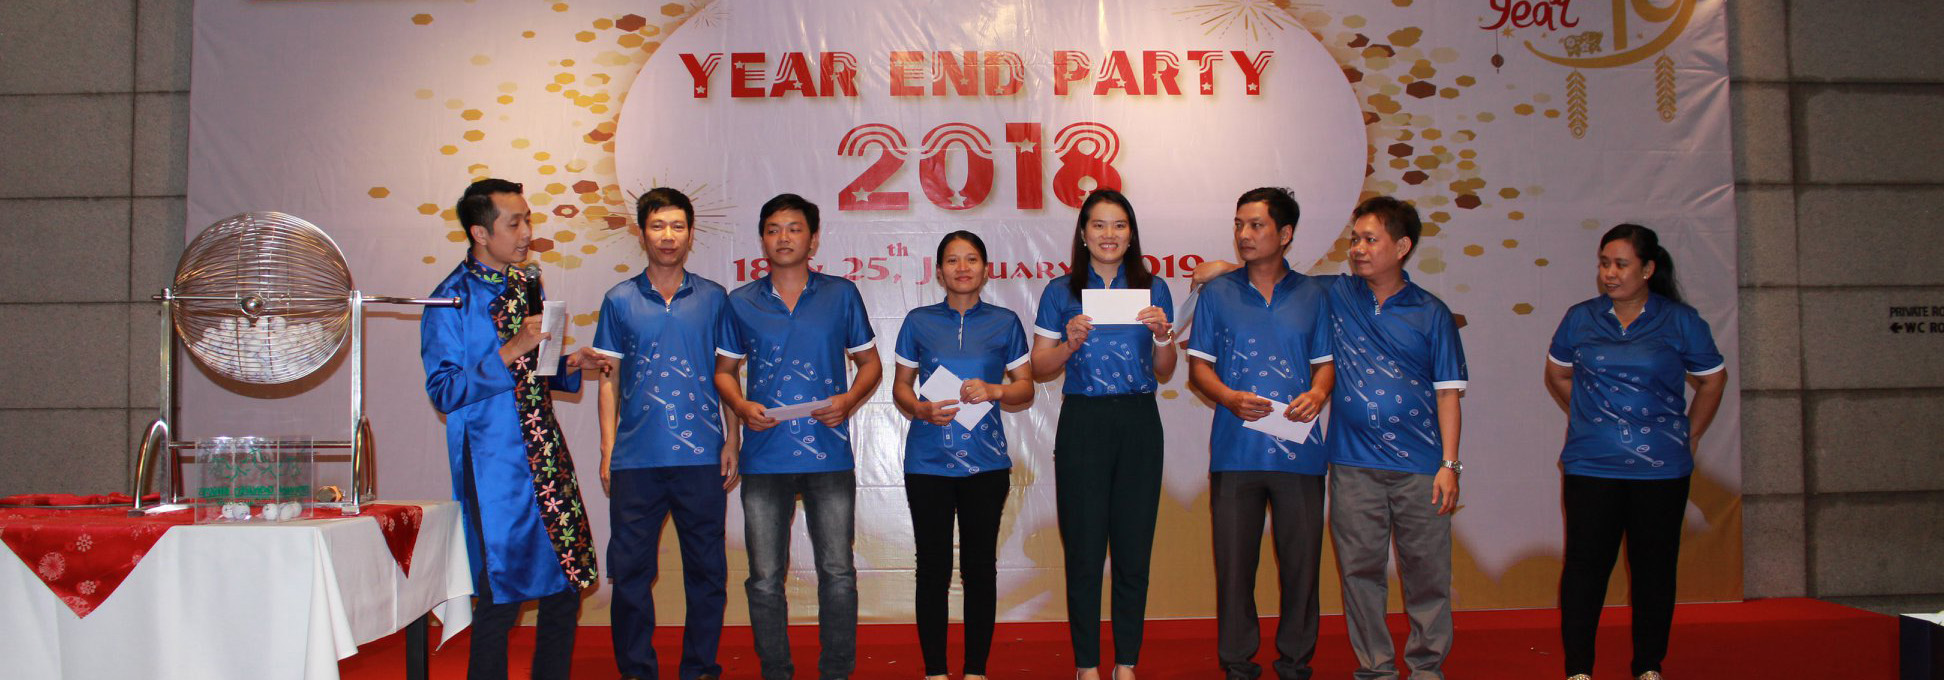 YEAR END PARTY TBC 2018